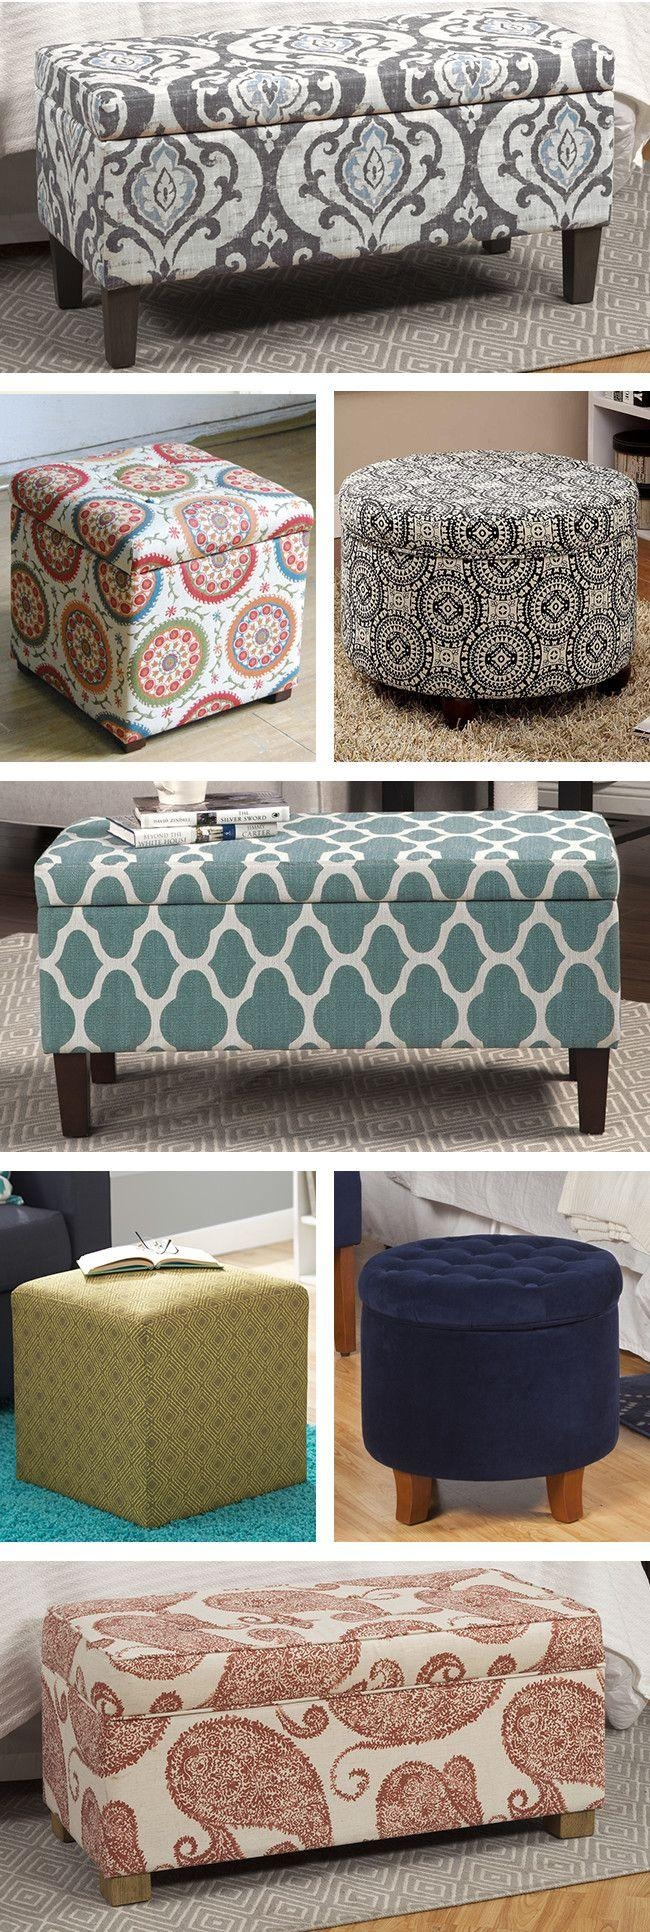 279 Best Ottoman – Pouf – Foot Stool + Images On Pinterest Regarding Footstool Pouffe Sofa Folding Bed (View 17 of 20)